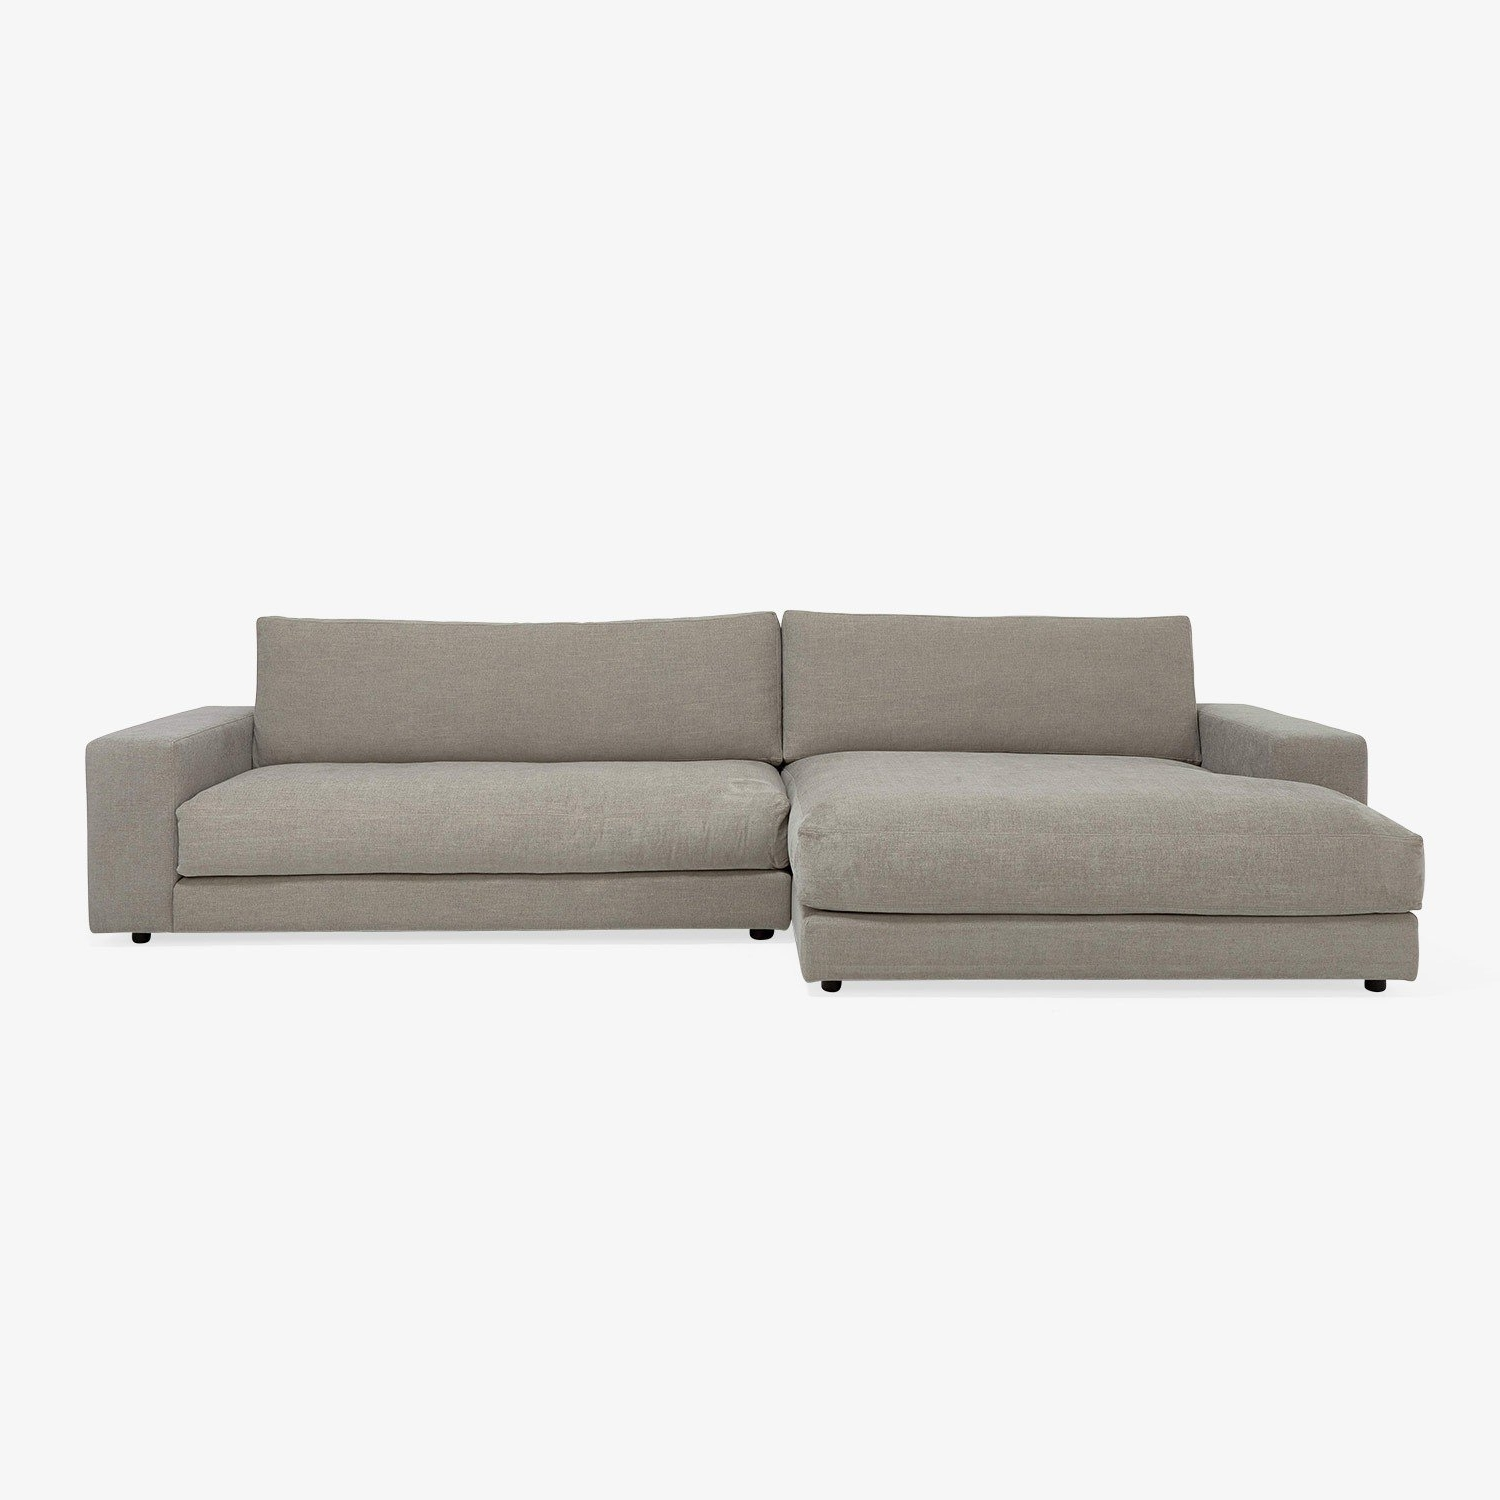 Modern Sectional Sofas For Nyc Apartments At Abc Home Inside Current Nyc Sectional Sofas (View 10 of 20)